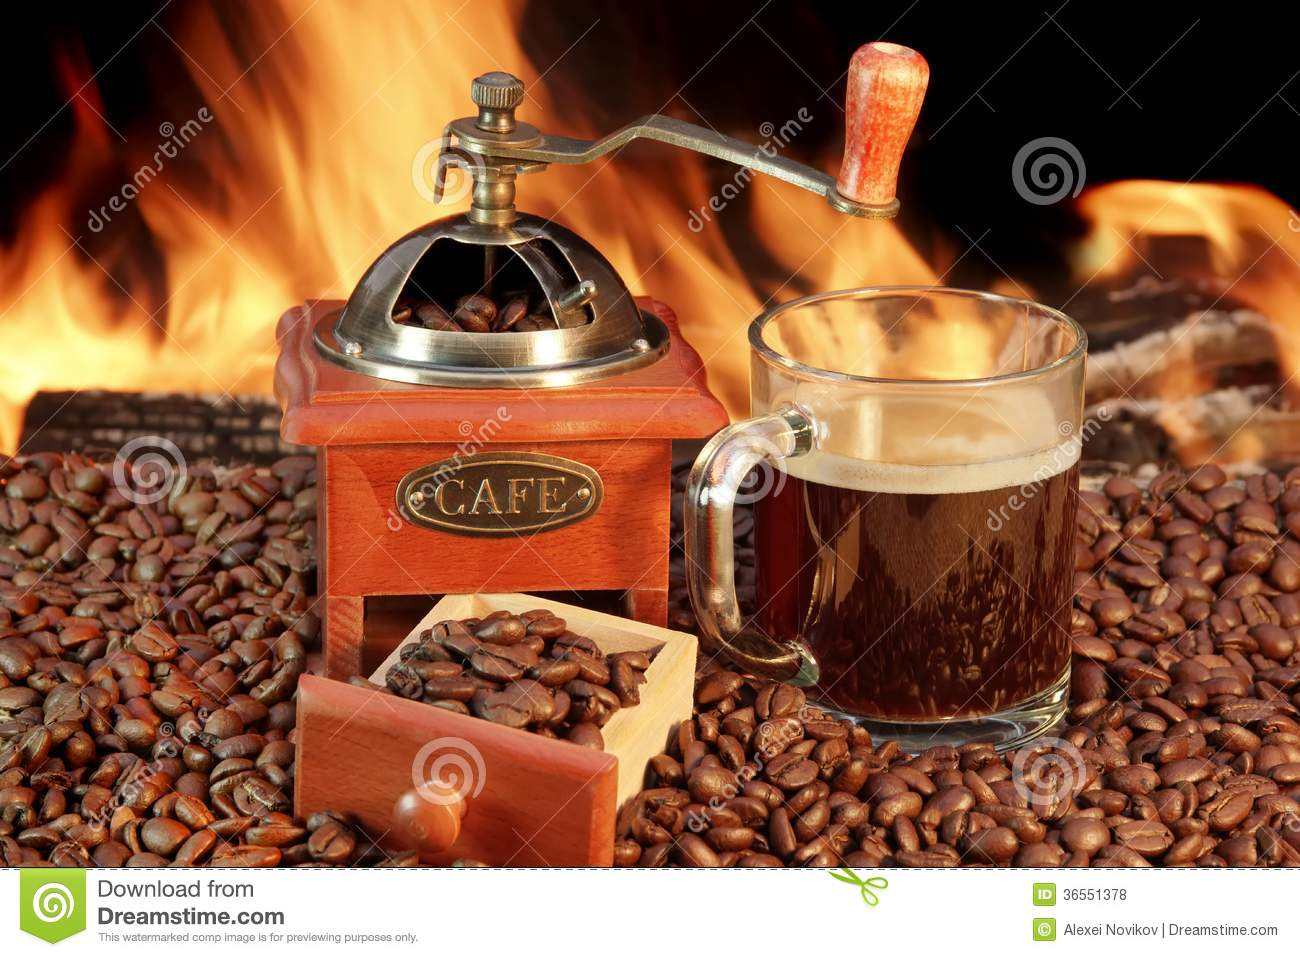 [Image: hot-mug-coffee-fire-old-grinder-fireplace-36551378.jpg]